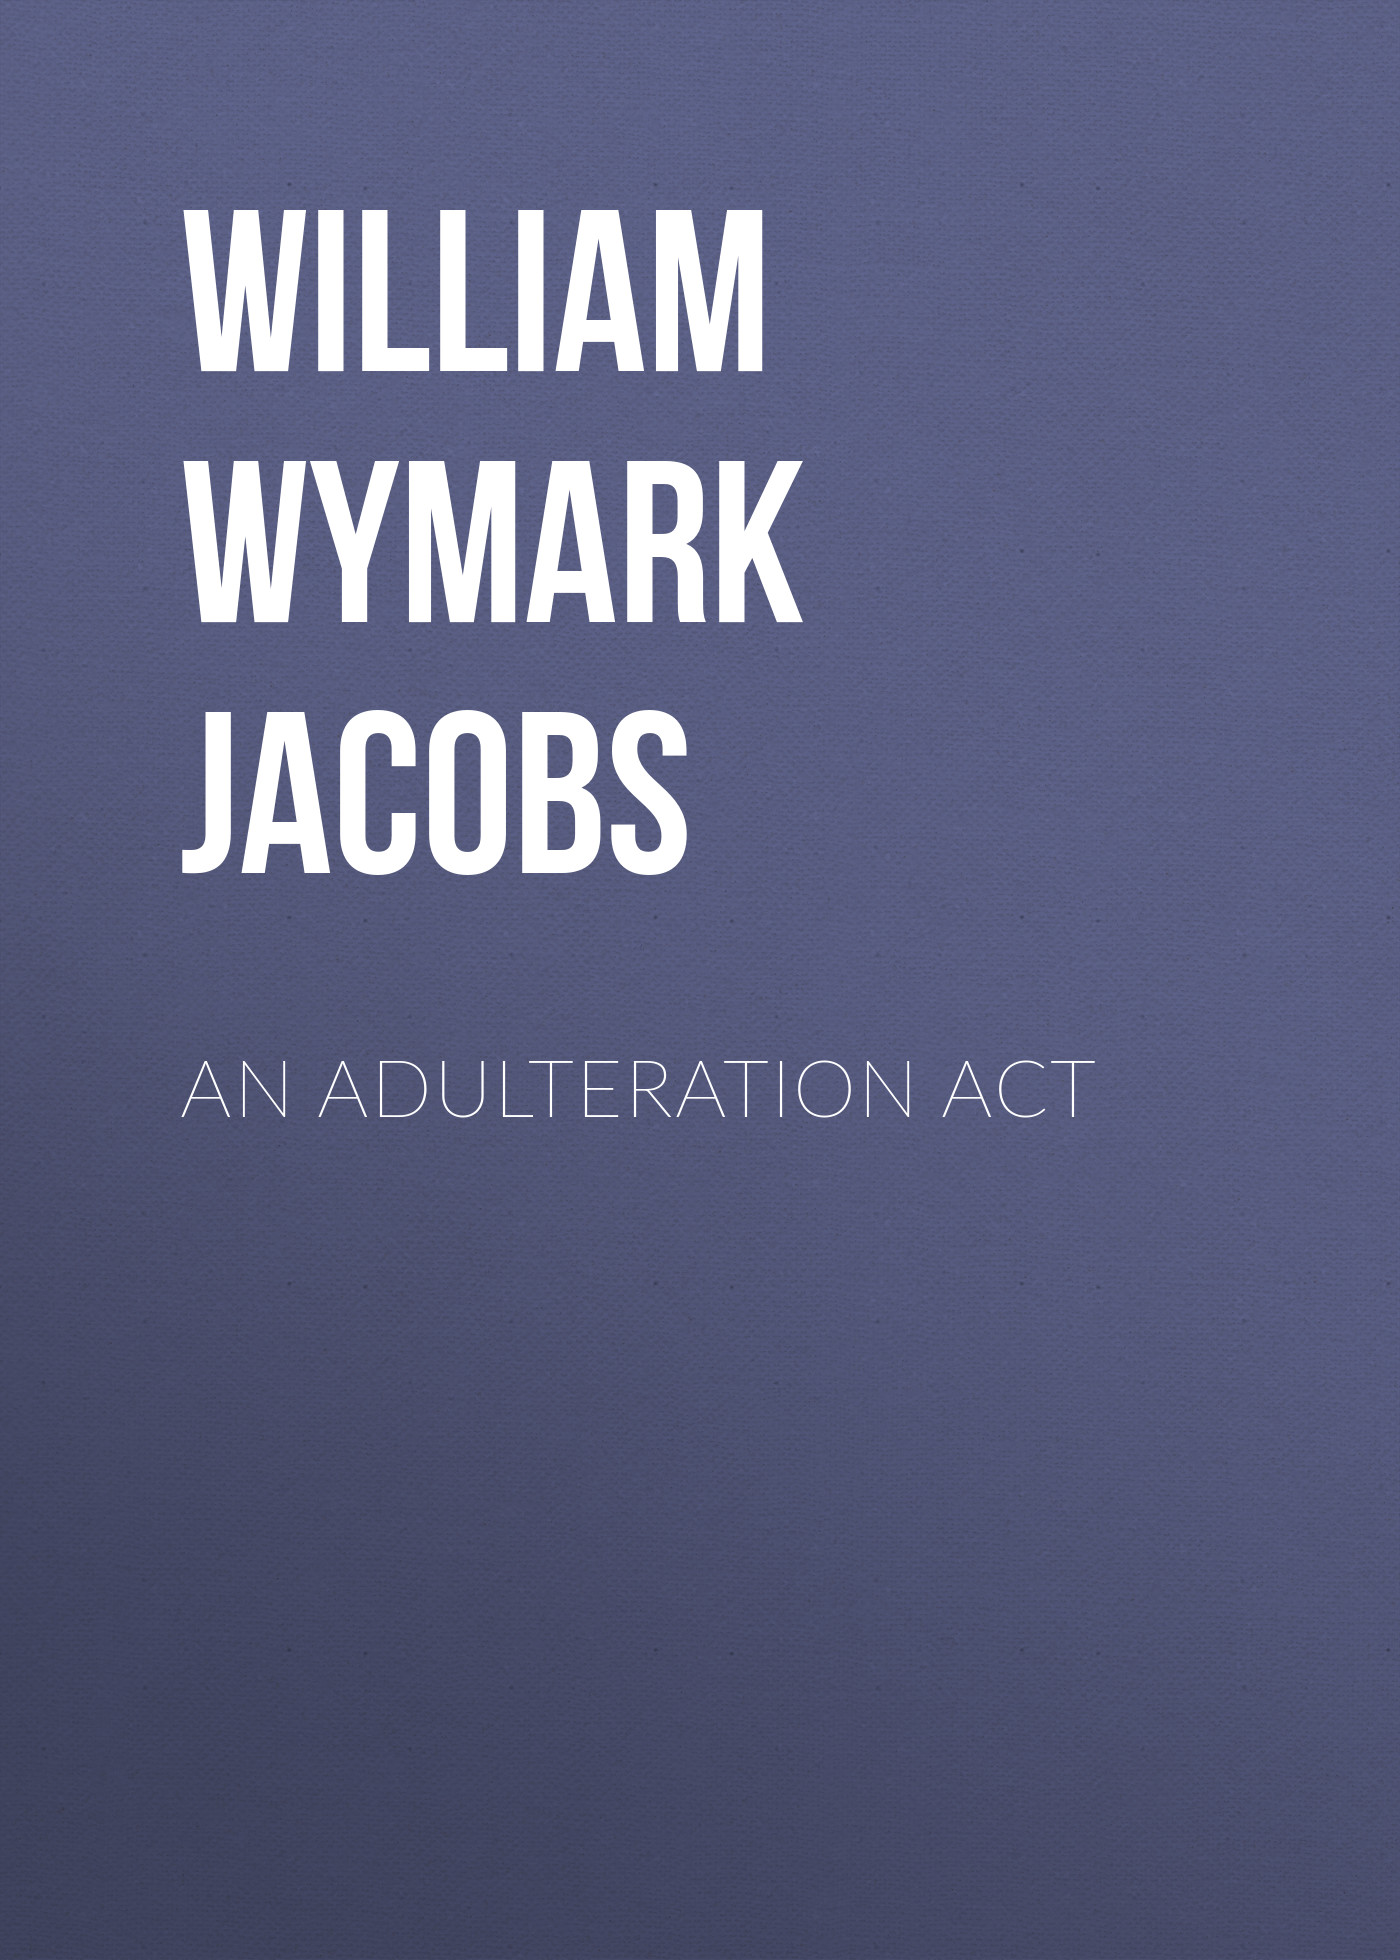 лучшая цена William Wymark Jacobs An Adulteration Act